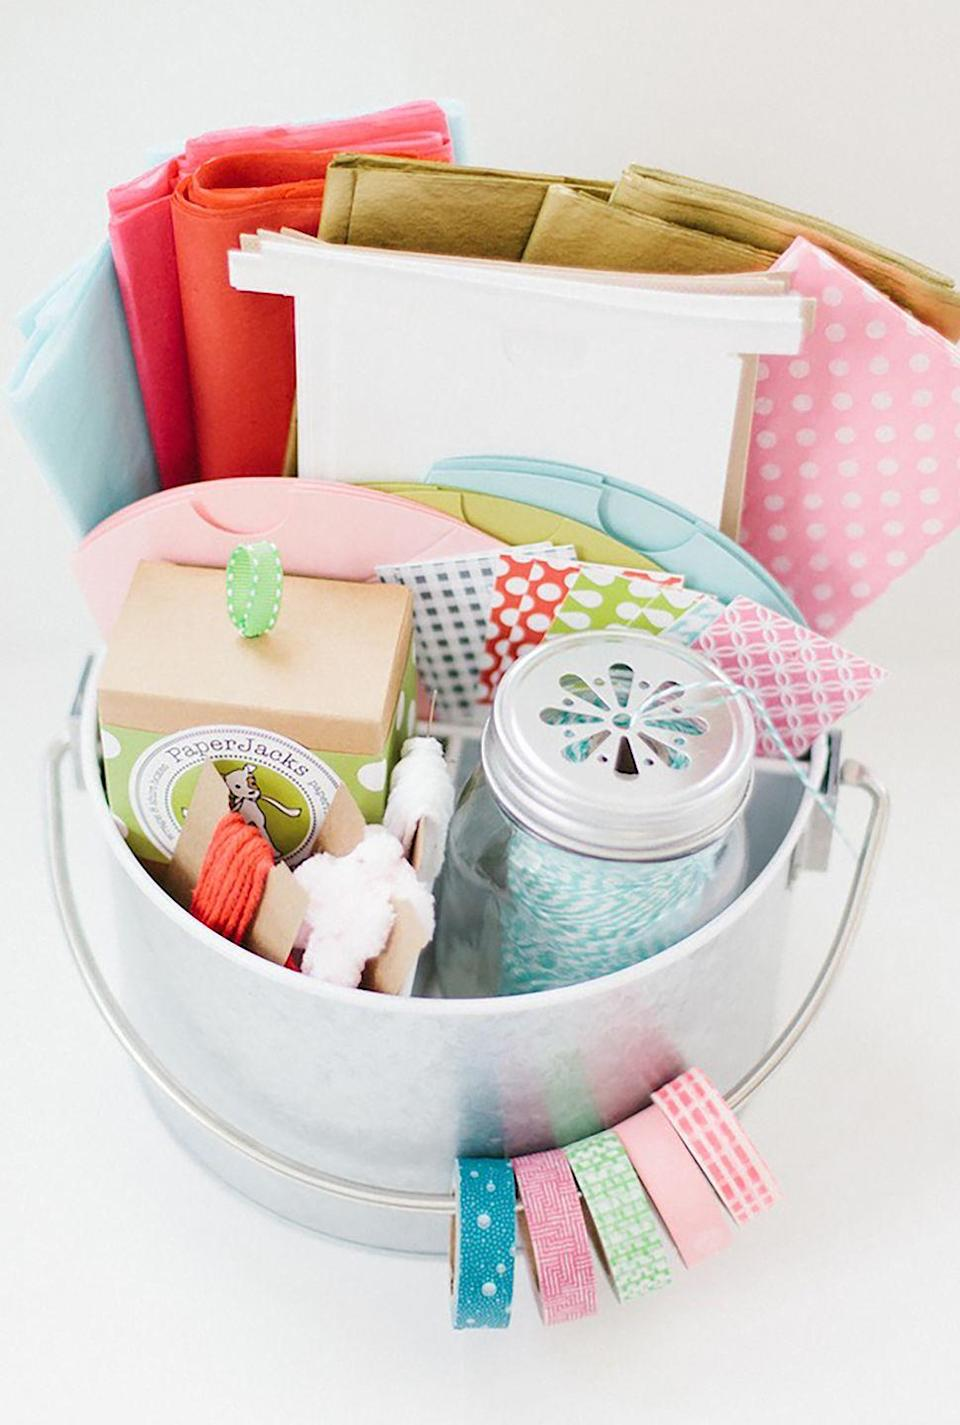 """<p>Have a crafty friend? This handy kit contains everything they need to elegantly wrap a present. </p><p><strong>Get the tutorial at <a href=""""http://www.iheartnaptime.net/gift-wrap-caddy/"""" rel=""""nofollow noopener"""" target=""""_blank"""" data-ylk=""""slk:I Heart Naptime"""" class=""""link rapid-noclick-resp"""">I Heart Naptime</a>.</strong> </p><p><strong><a class=""""link rapid-noclick-resp"""" href=""""https://go.redirectingat.com?id=74968X1596630&url=https%3A%2F%2Fwww.minted.com%2Fwrapping-paper&sref=https%3A%2F%2Fwww.countryliving.com%2Fdiy-crafts%2Ftips%2Fg645%2Fcrafty-christmas-presents-ideas%2F"""" rel=""""nofollow noopener"""" target=""""_blank"""" data-ylk=""""slk:SHOP WRAPPING PAPER"""">SHOP WRAPPING PAPER</a><br></strong></p>"""